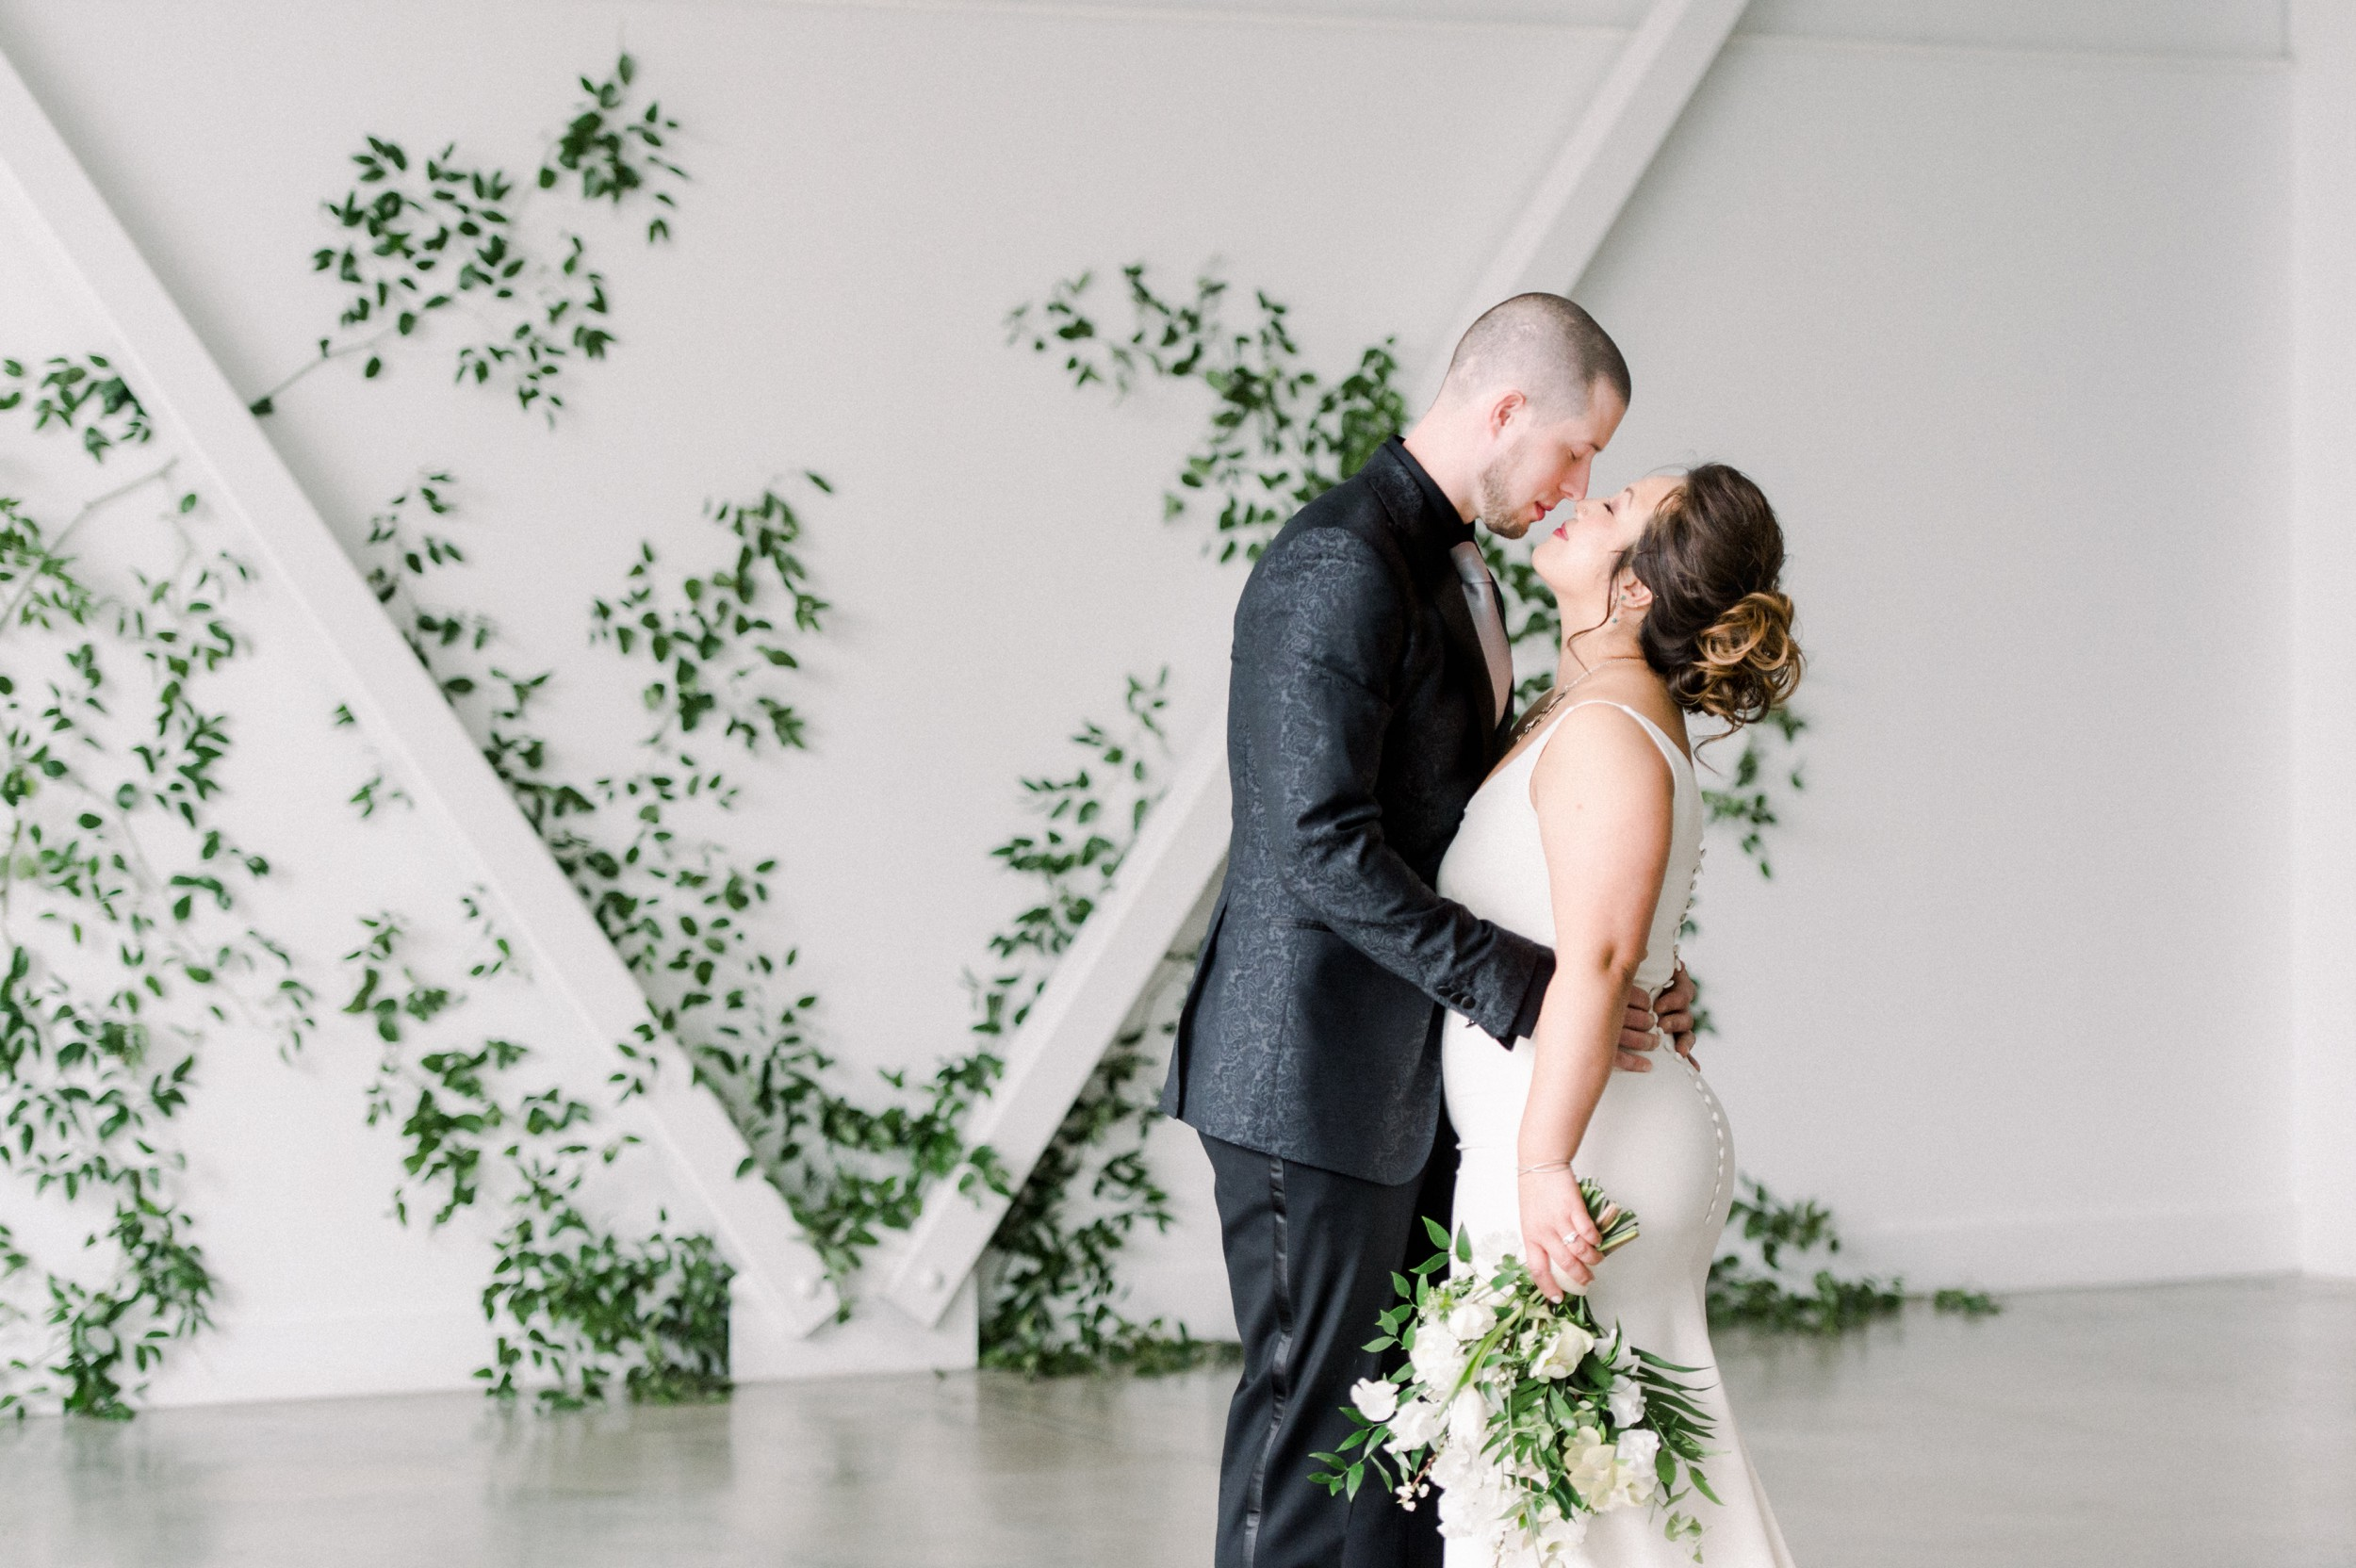 Artists for humanity epicenter wedding | Boston wedding | modern white bridal bouquet by Twig & Briar | green botanical wedding inspiration | bride and groom portraits